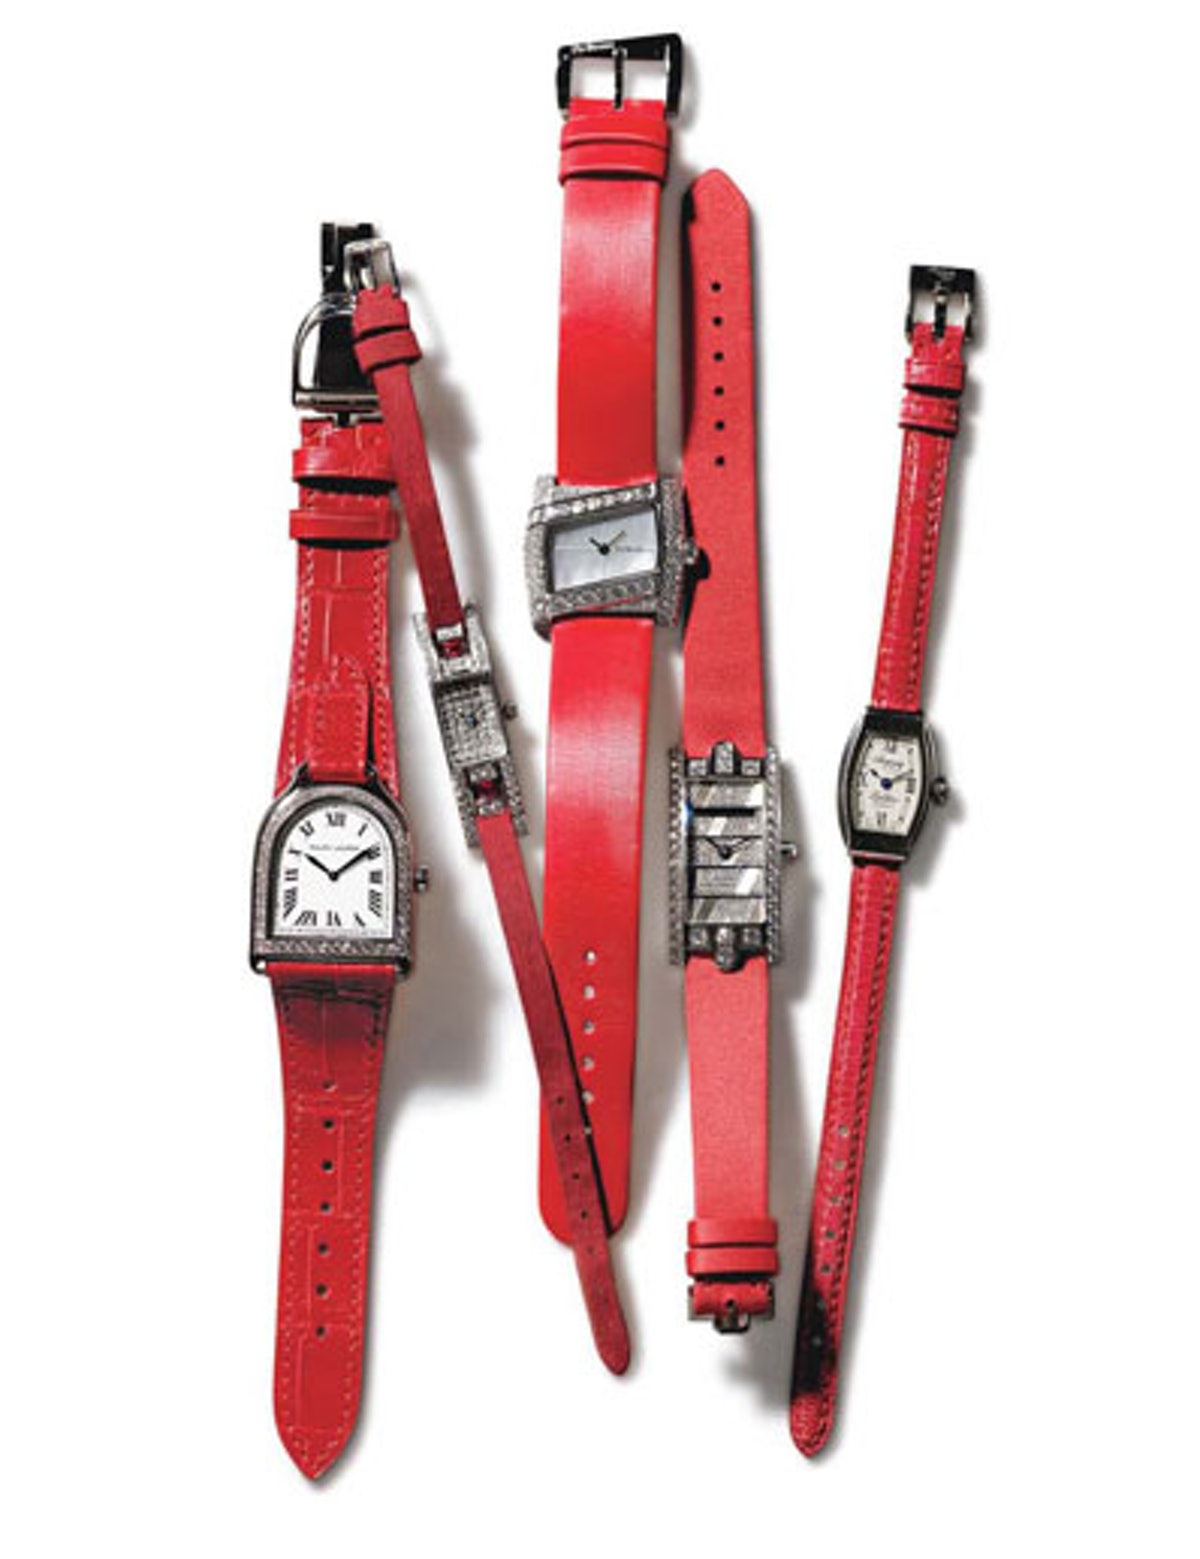 acss_red_watches_v.jpg